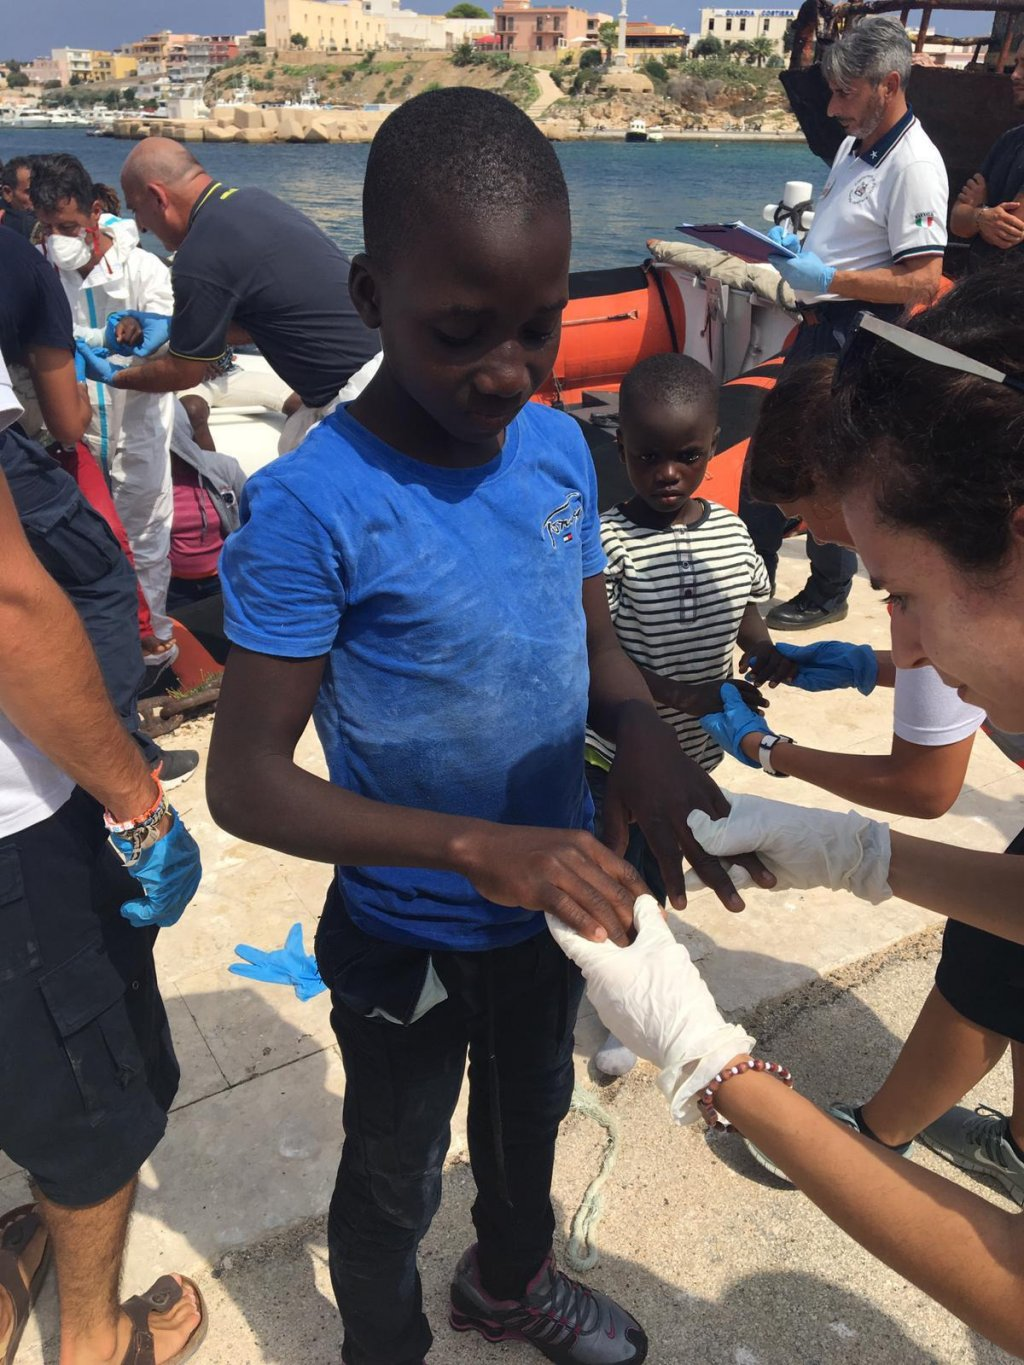 Italian authorities perform health checks on all new arrivals | Photo: ANSA